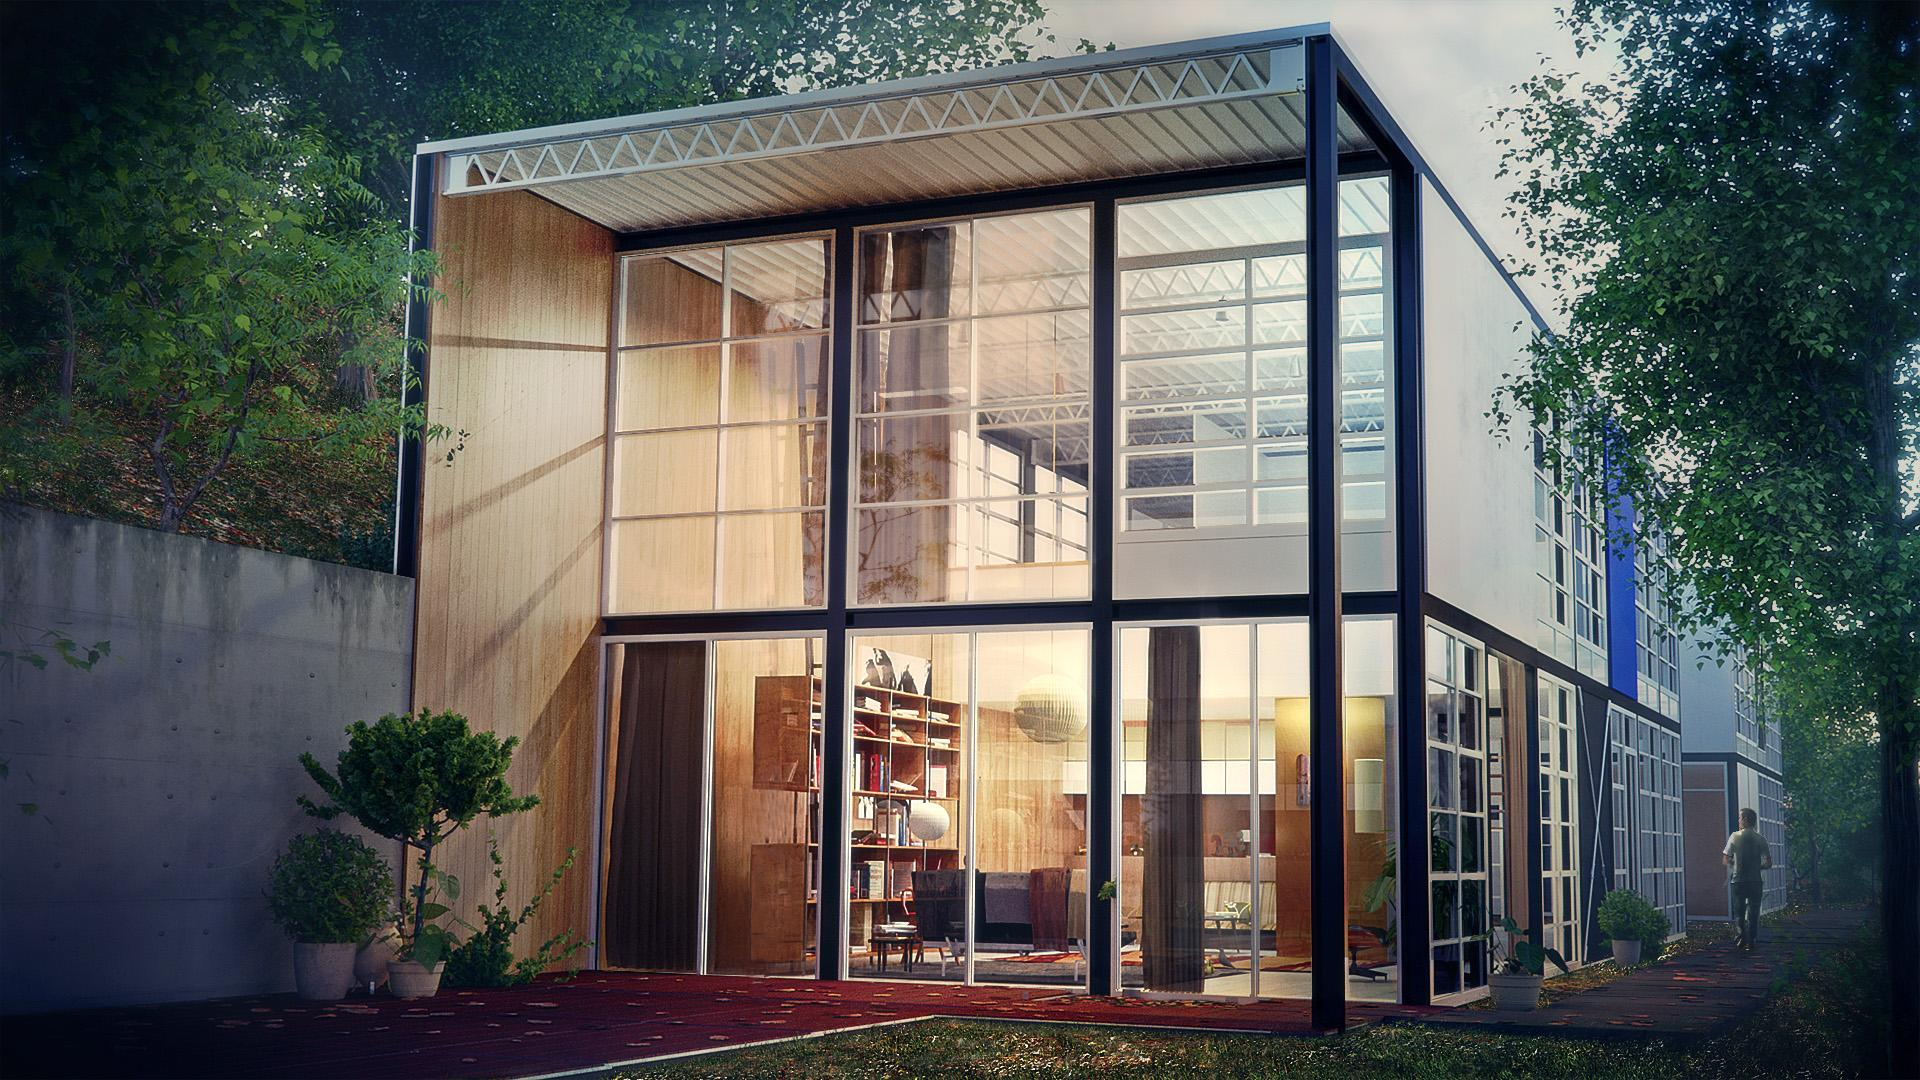 Eames case study house 8 mid century modern groovy for Modern house 8